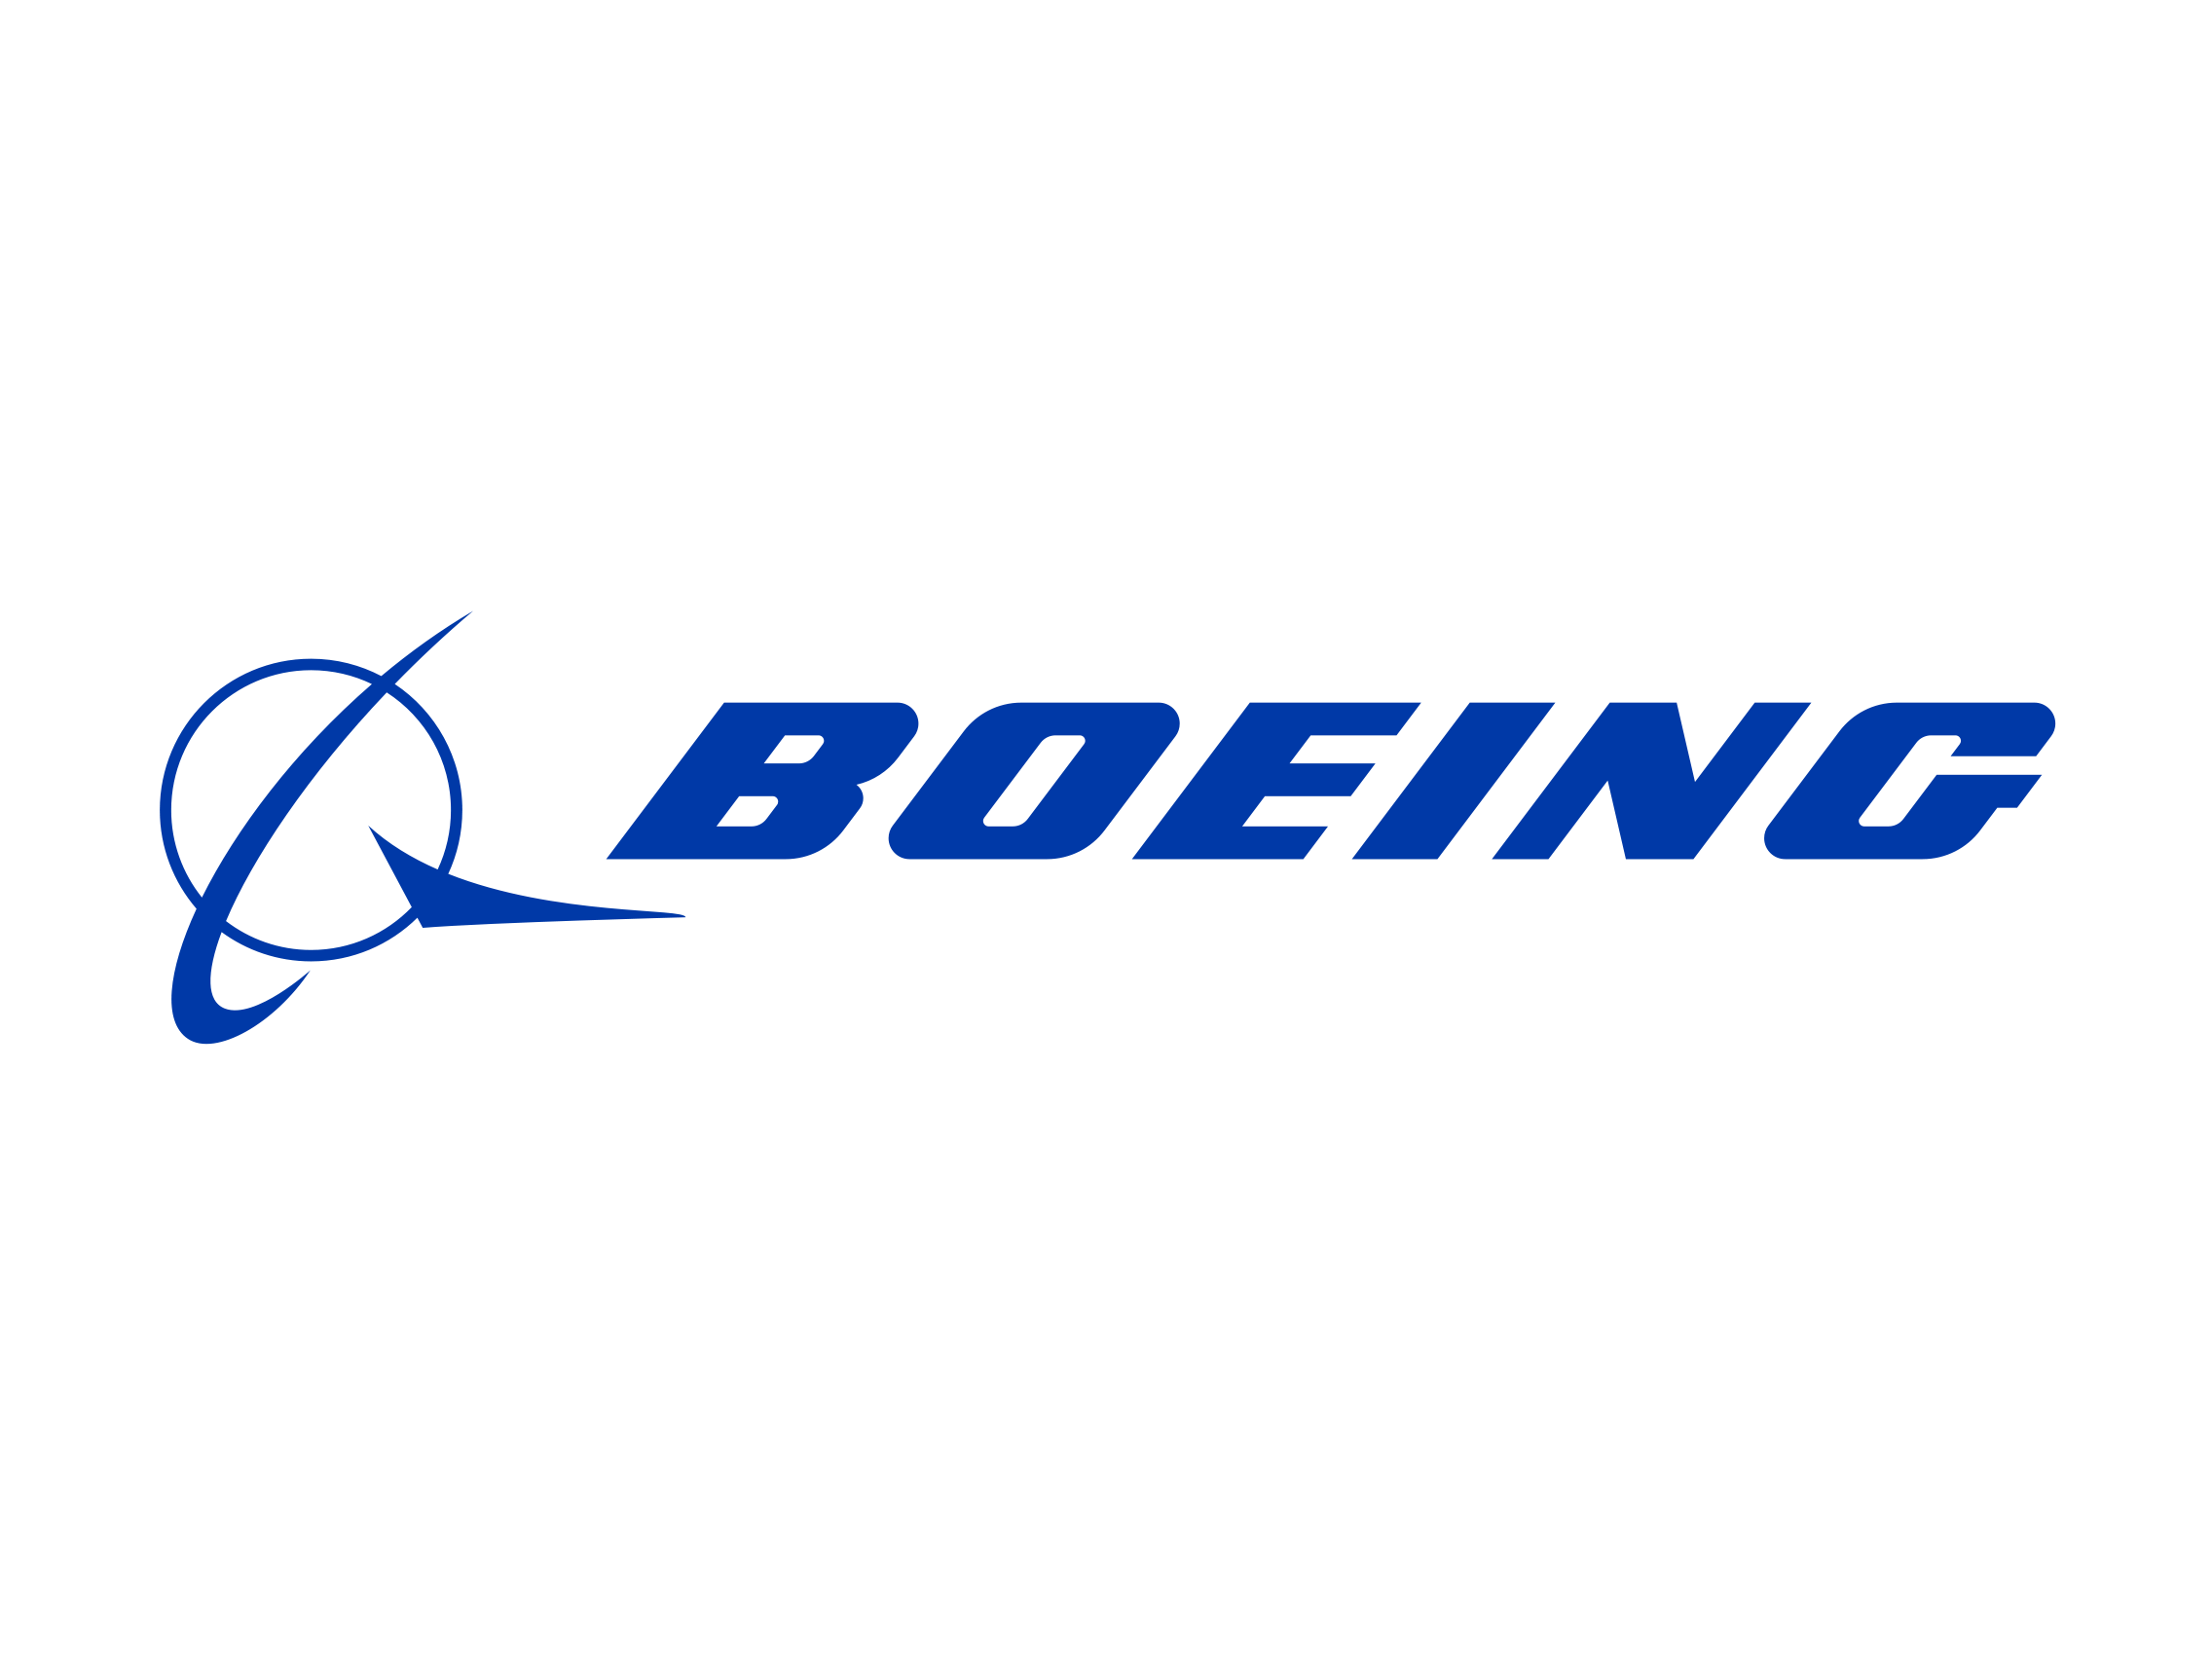 Boeing-logo-and-wordmark